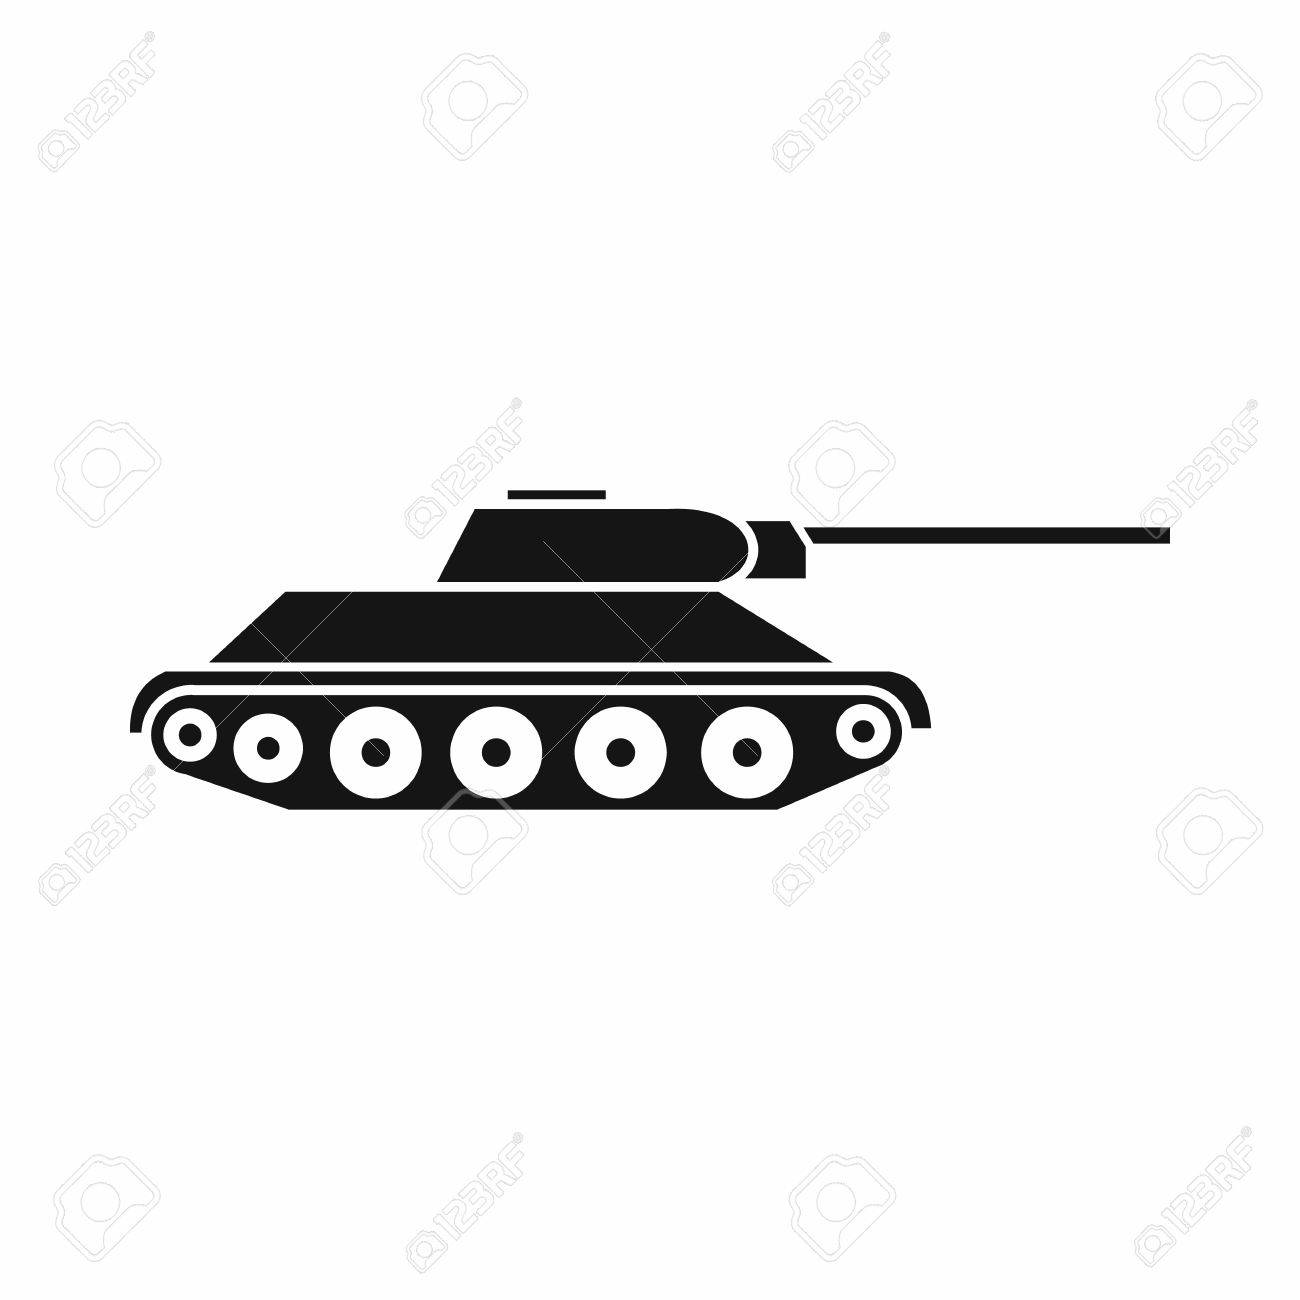 tank icon in simple style isolated on white background military royalty free cliparts vectors and stock illustration image 60388073 tank icon in simple style isolated on white background military